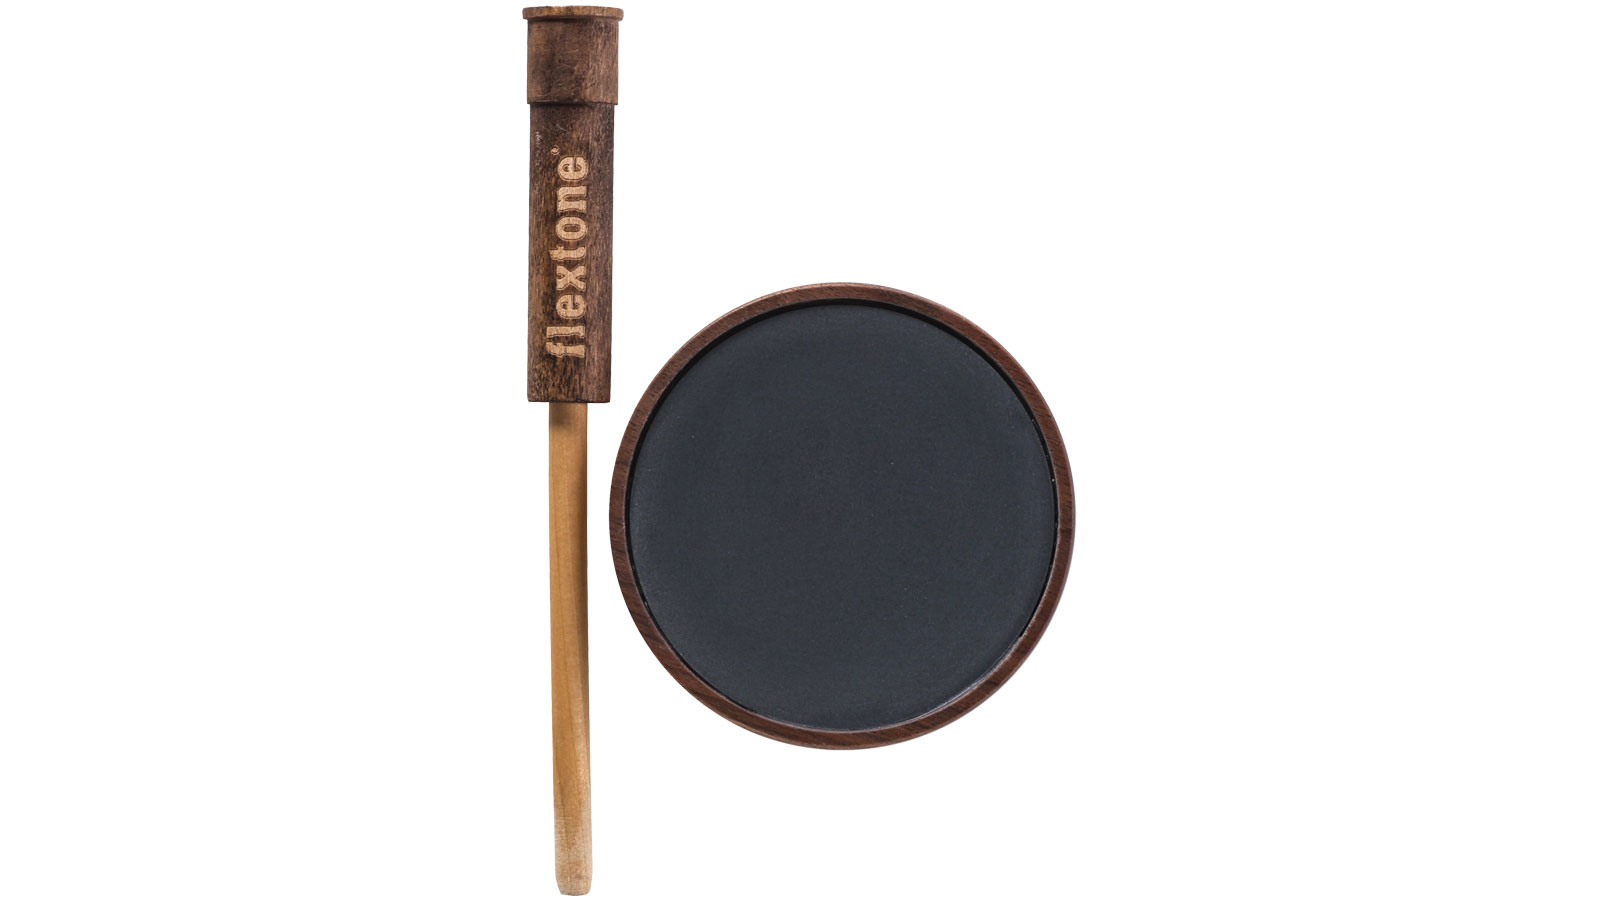 flextone Ol' Faithful Slate Friction Turkey Call - Walnut Pot|Slate